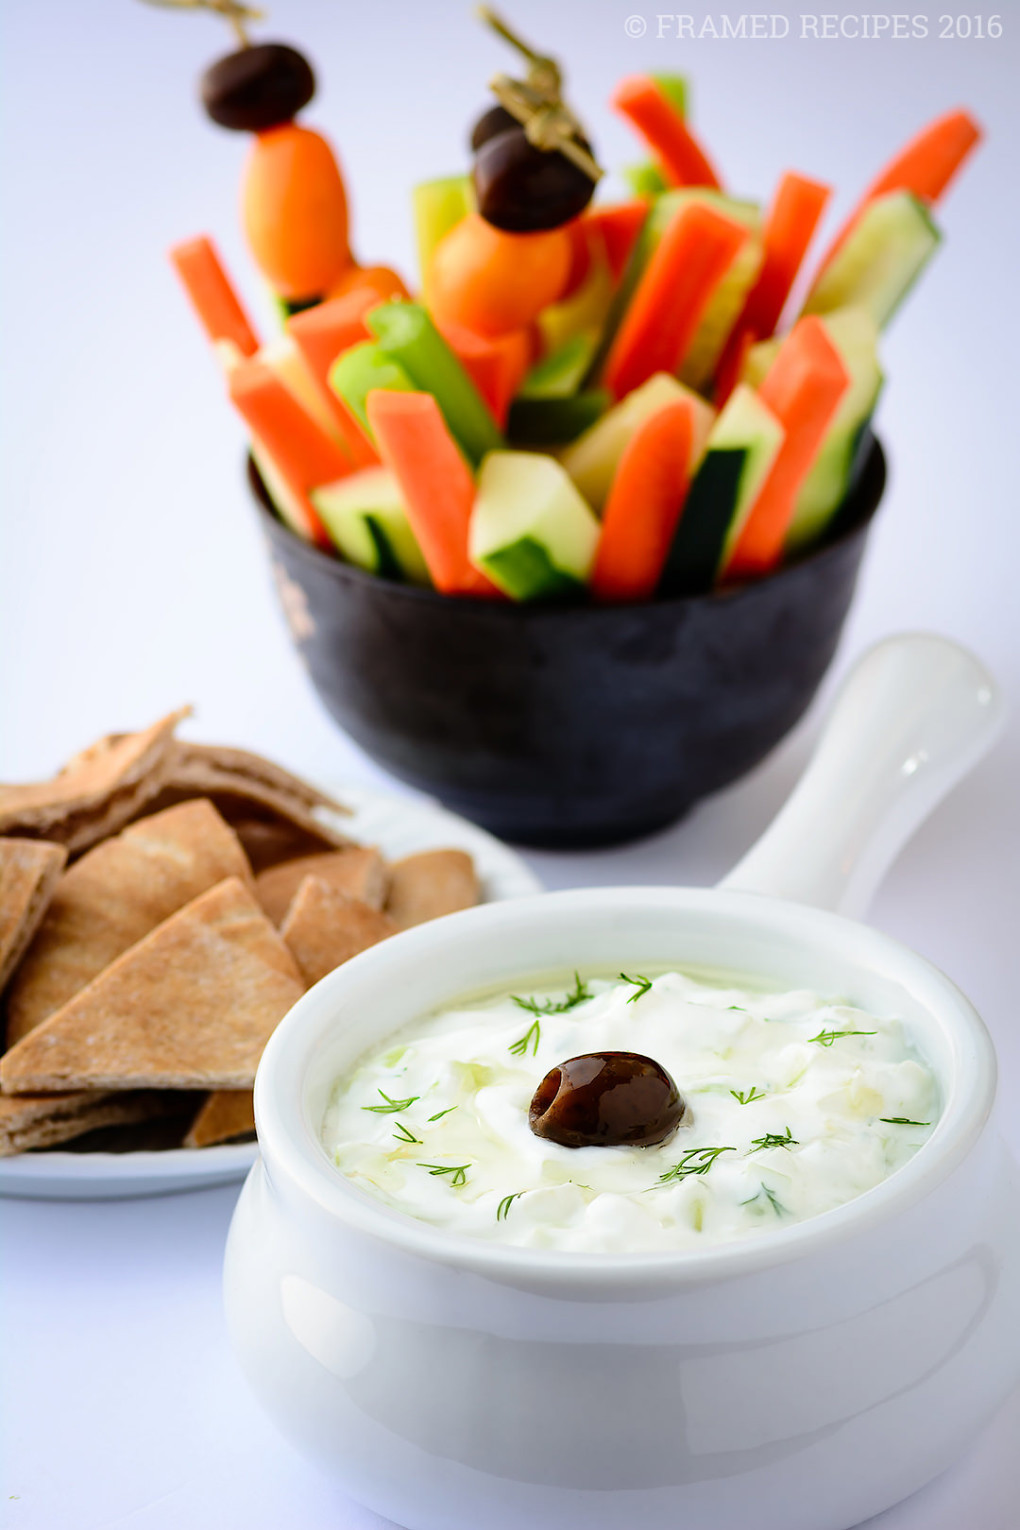 Is Tzatziki Sauce Healthy  Tzatziki Sauce Recipe Framed Recipes